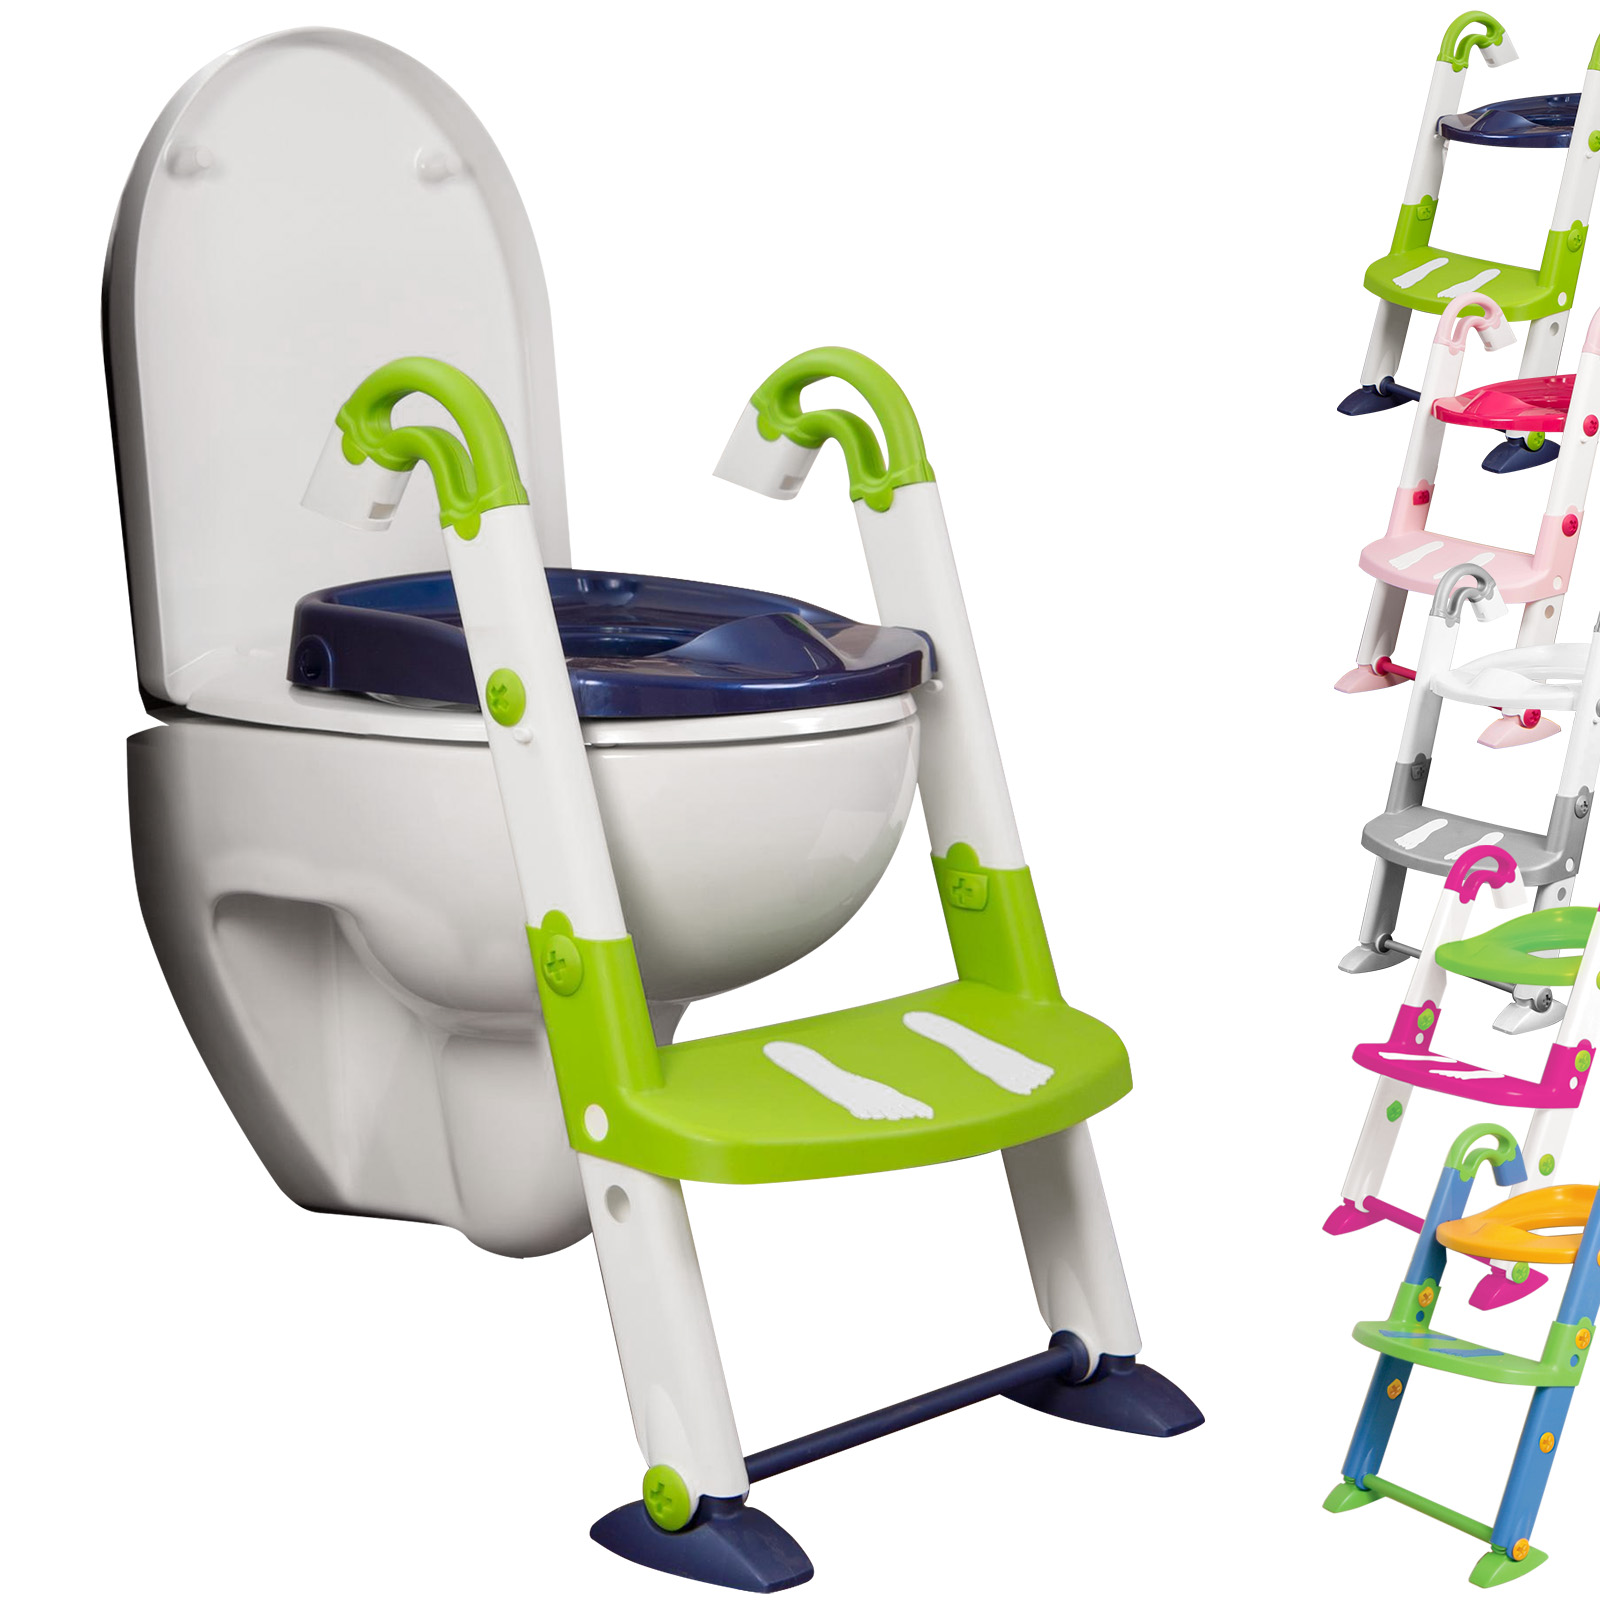 Kinder Wc Sitz Kidskit 3in1 Toilettentrainer Kinder Wc Sitz Toilettensitz